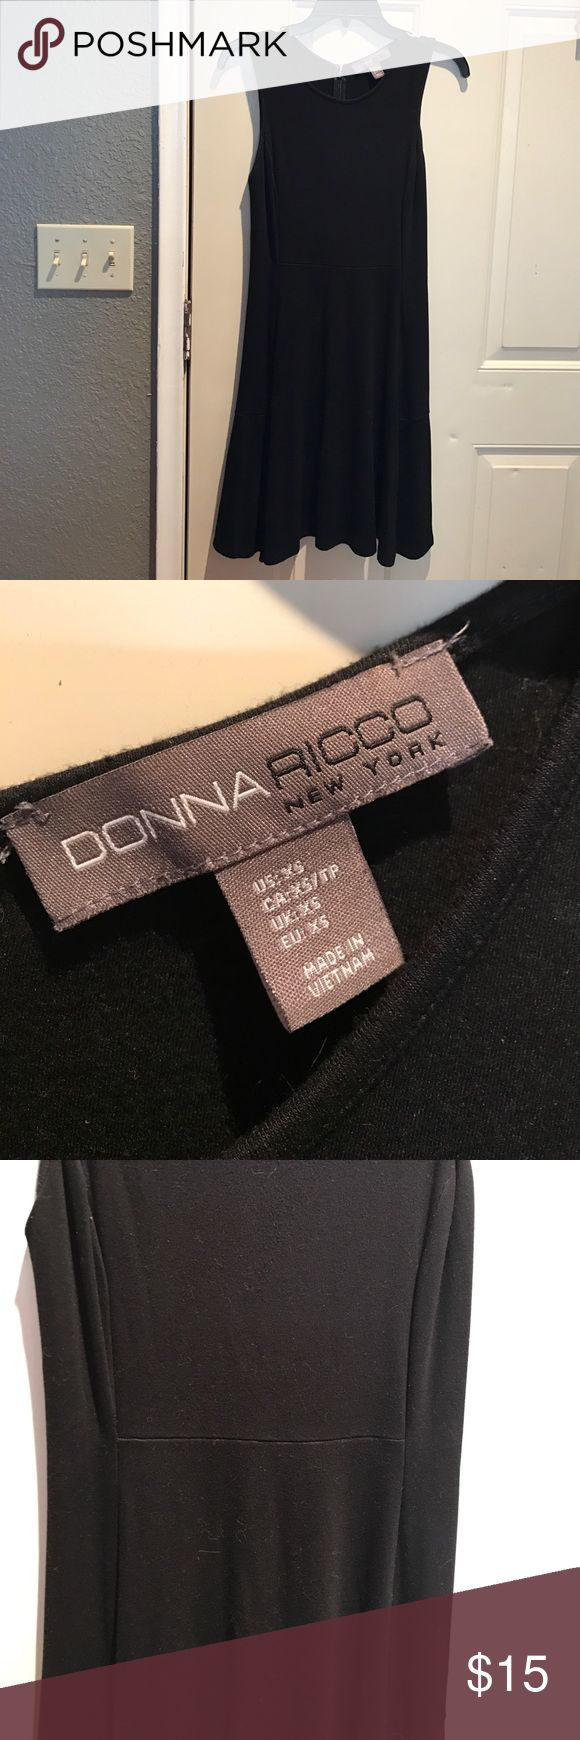 Donna Rico Dress Black